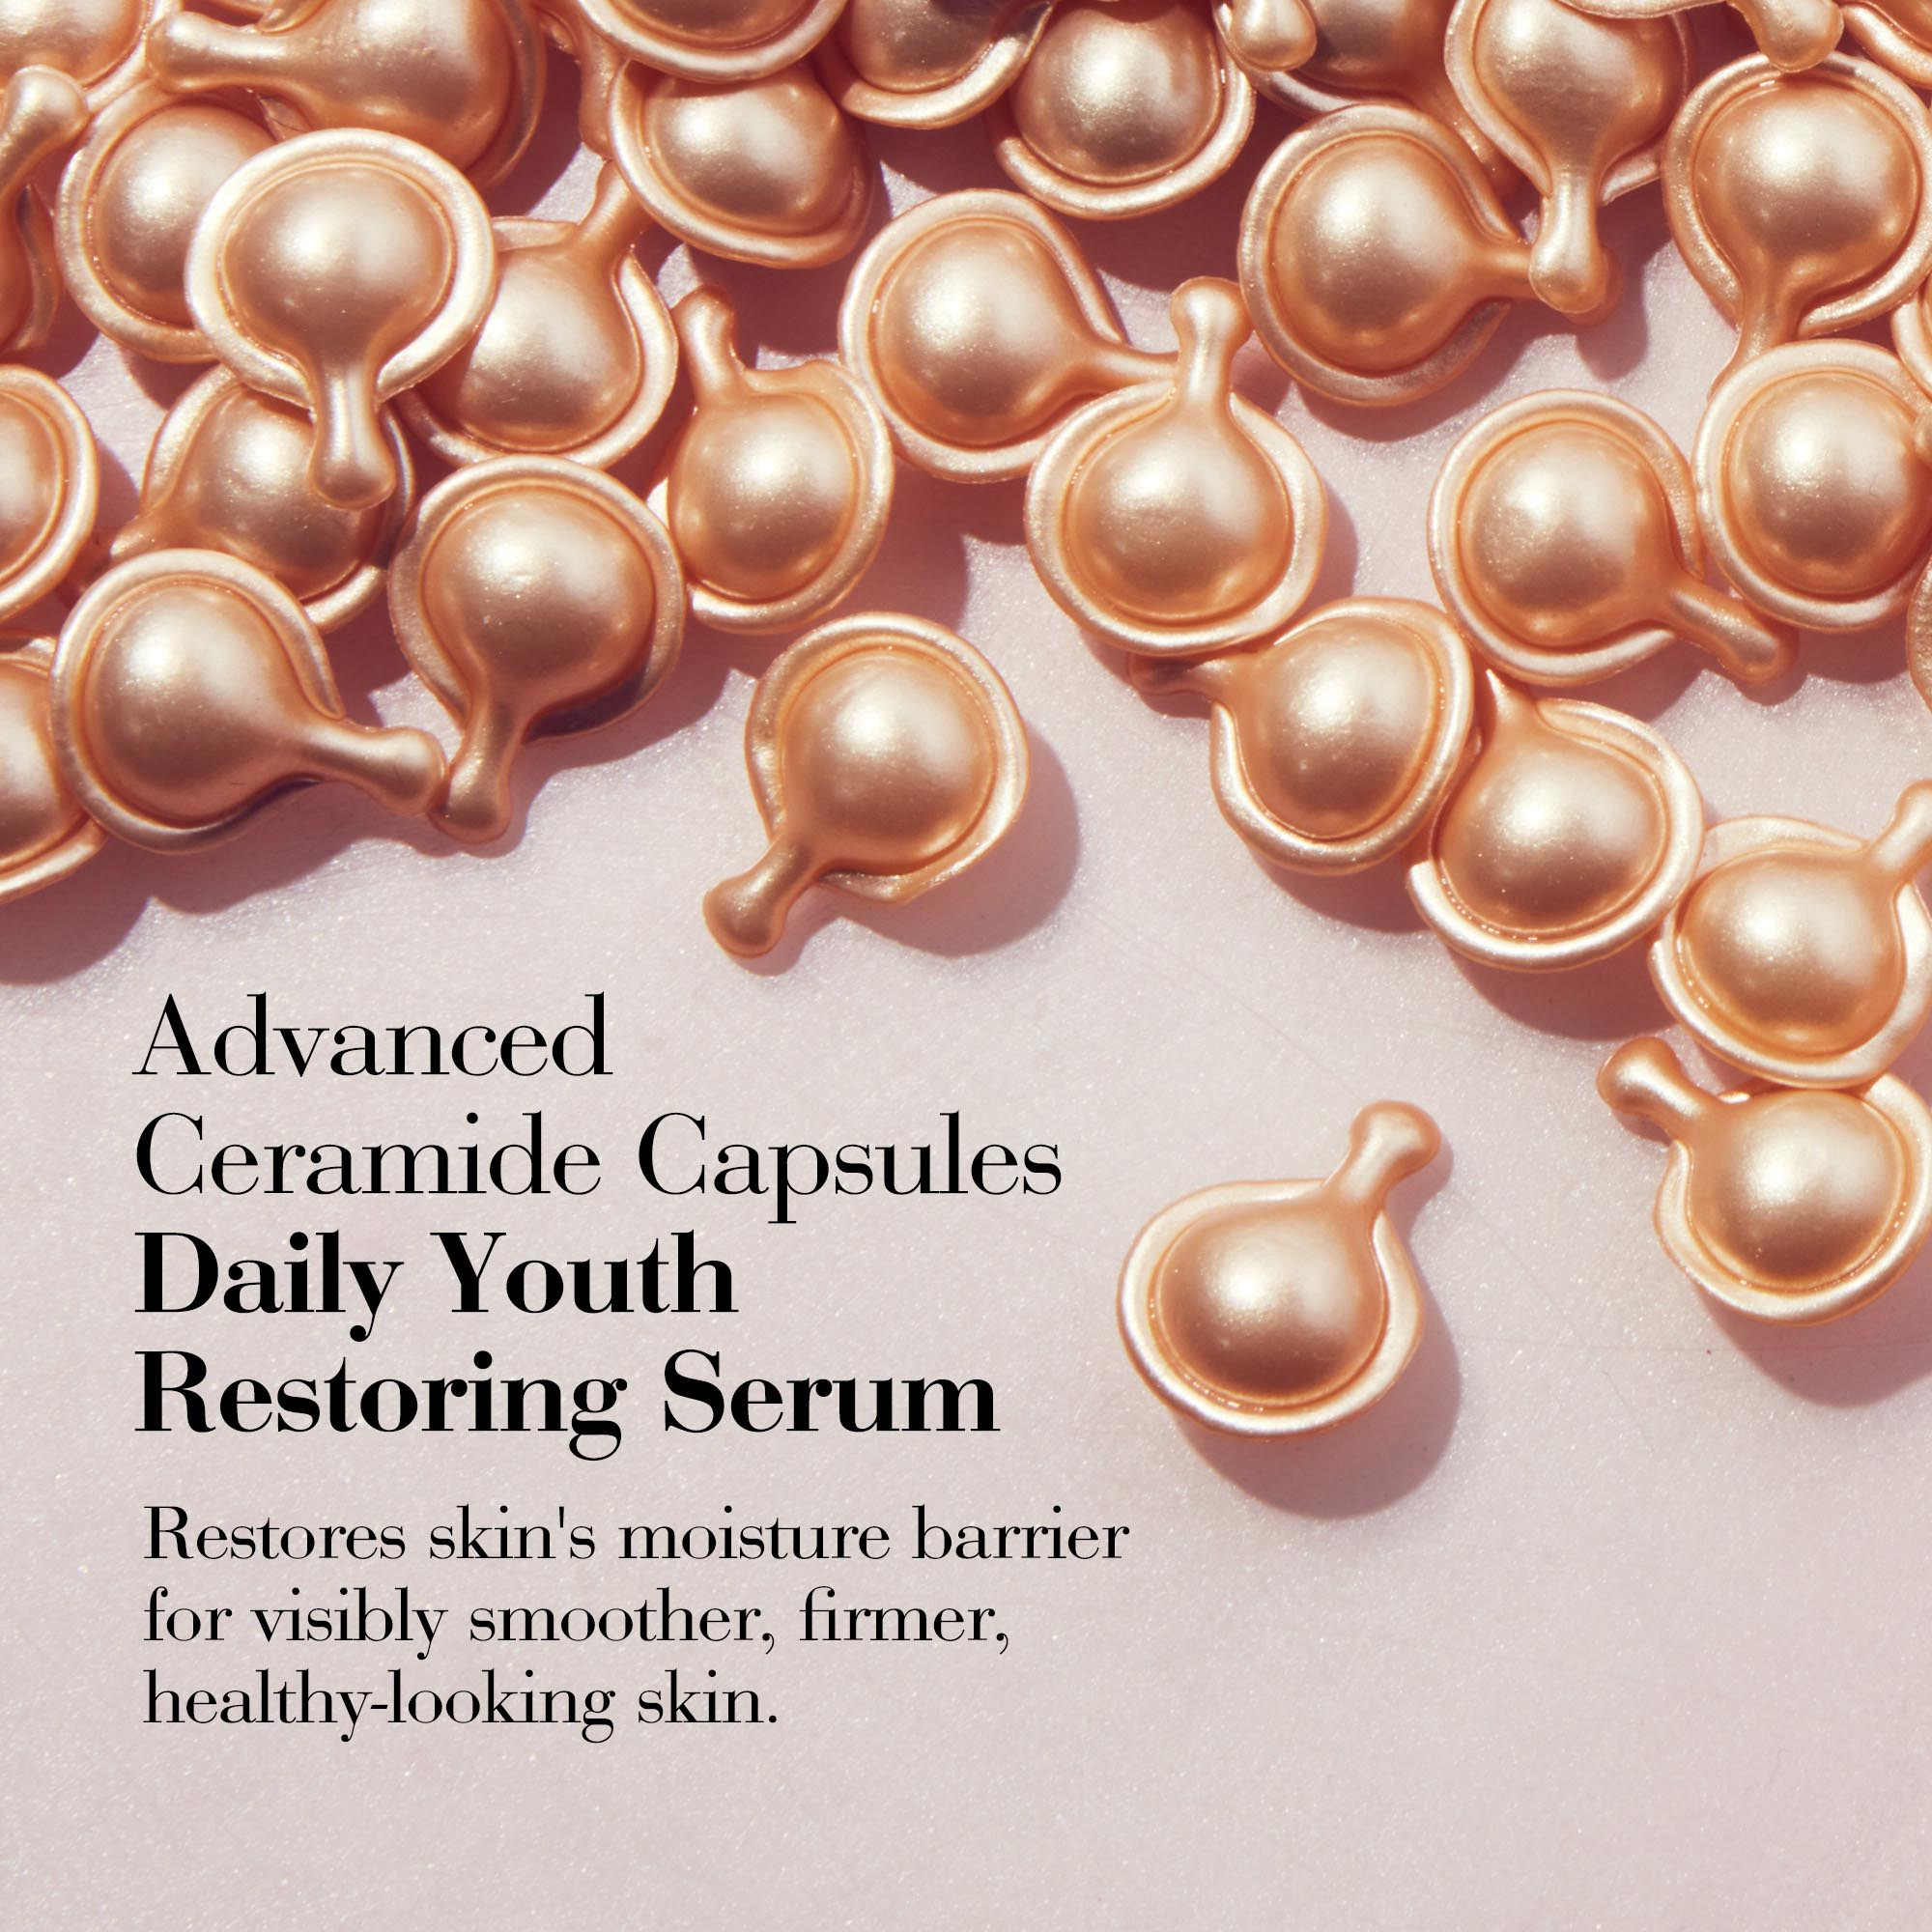 Advanced Ceramide Capsules Daily youth Restoring Serum- Restores skin's moisture barrier for visibly smoother, firmer, healthy-looking skin.